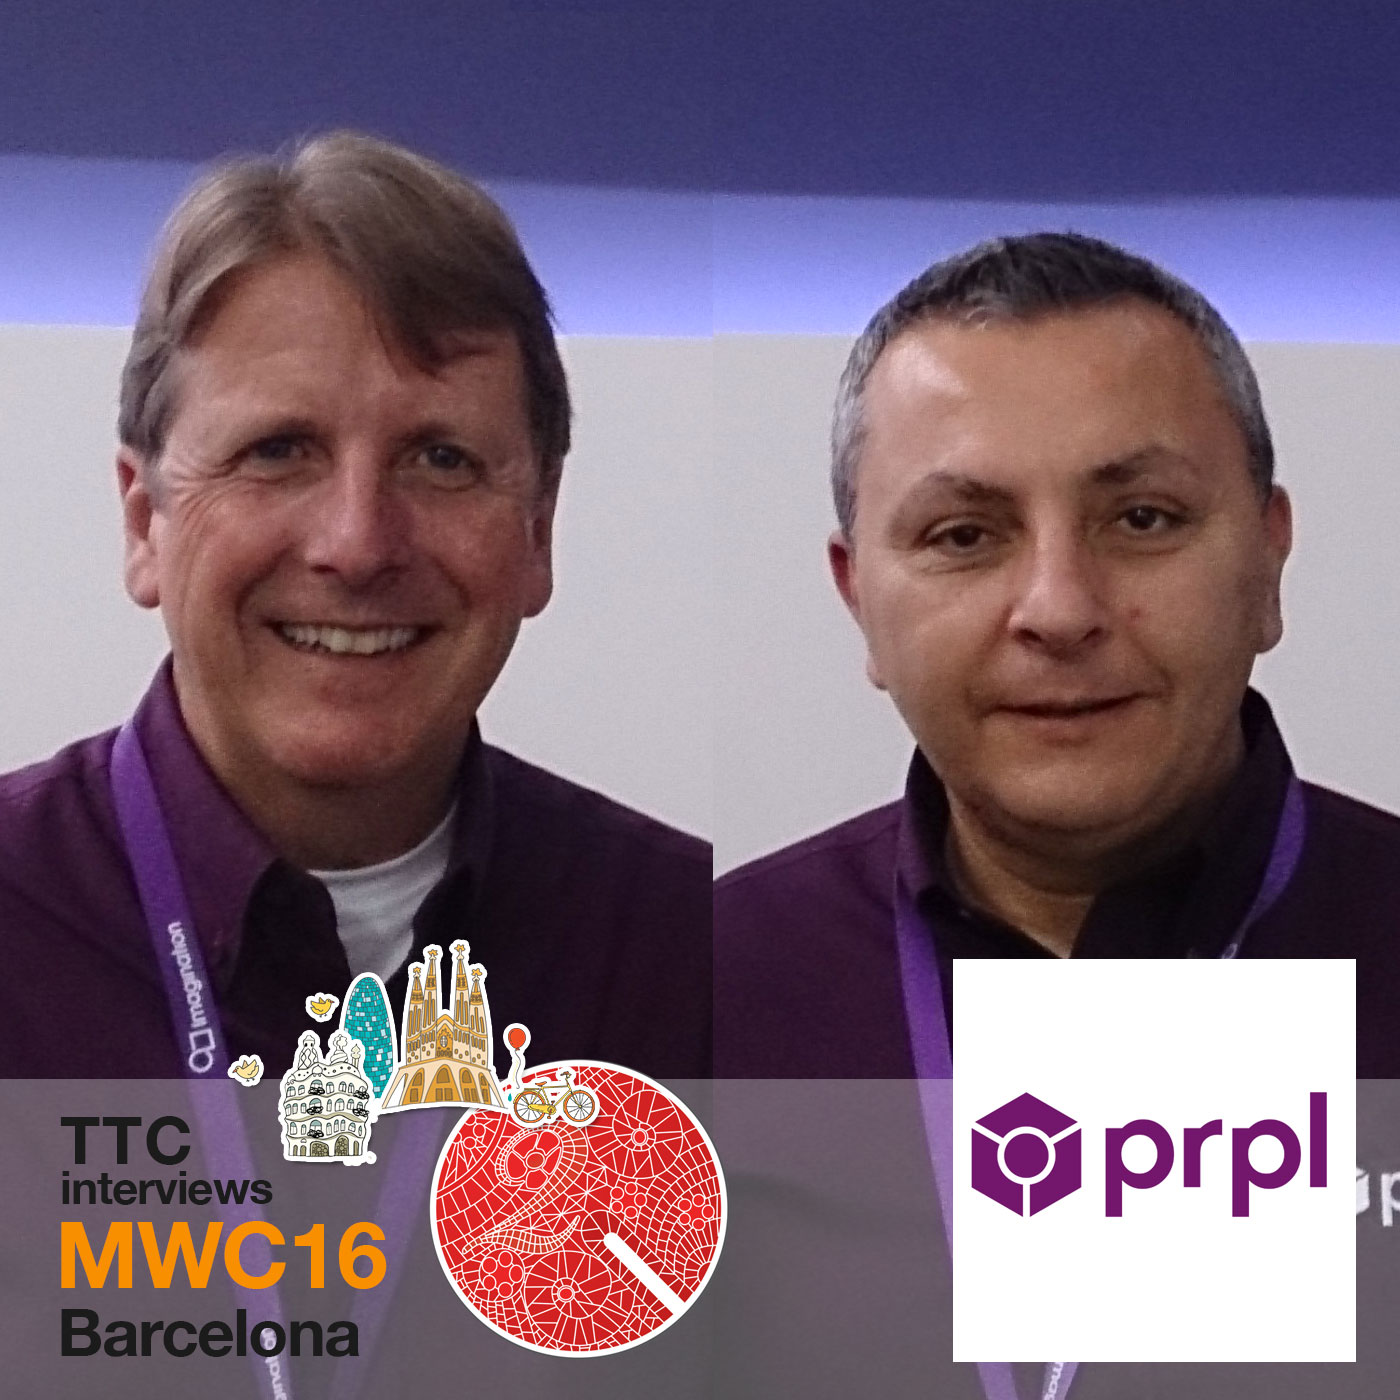 Art Swift and Cesare Garlati prpl foundation MWC16